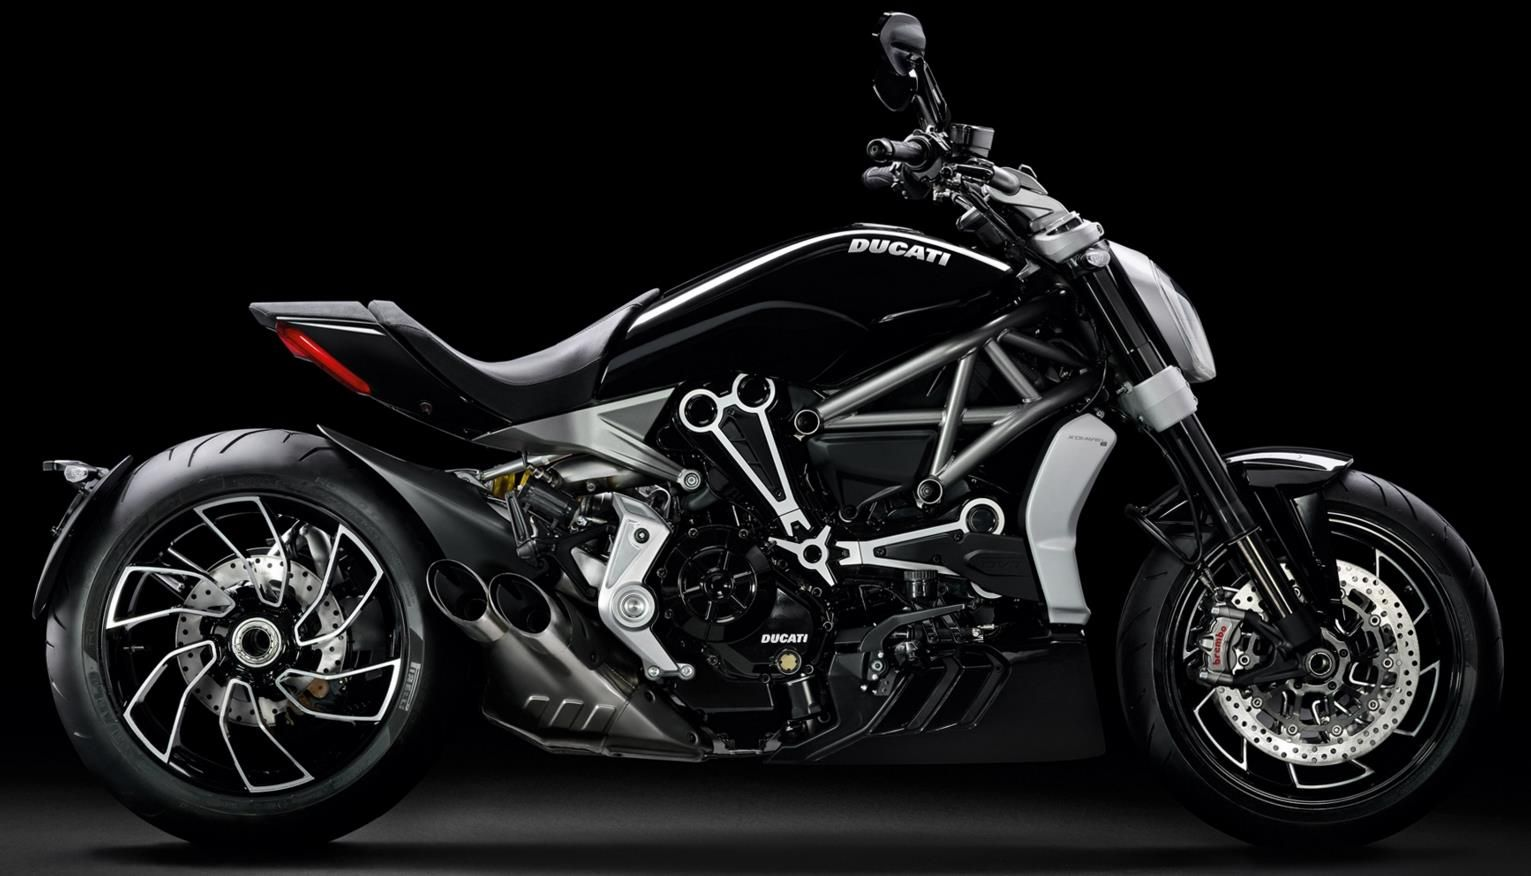 Ducati Xdiavel S Price Specs Review Pics Mileage In India